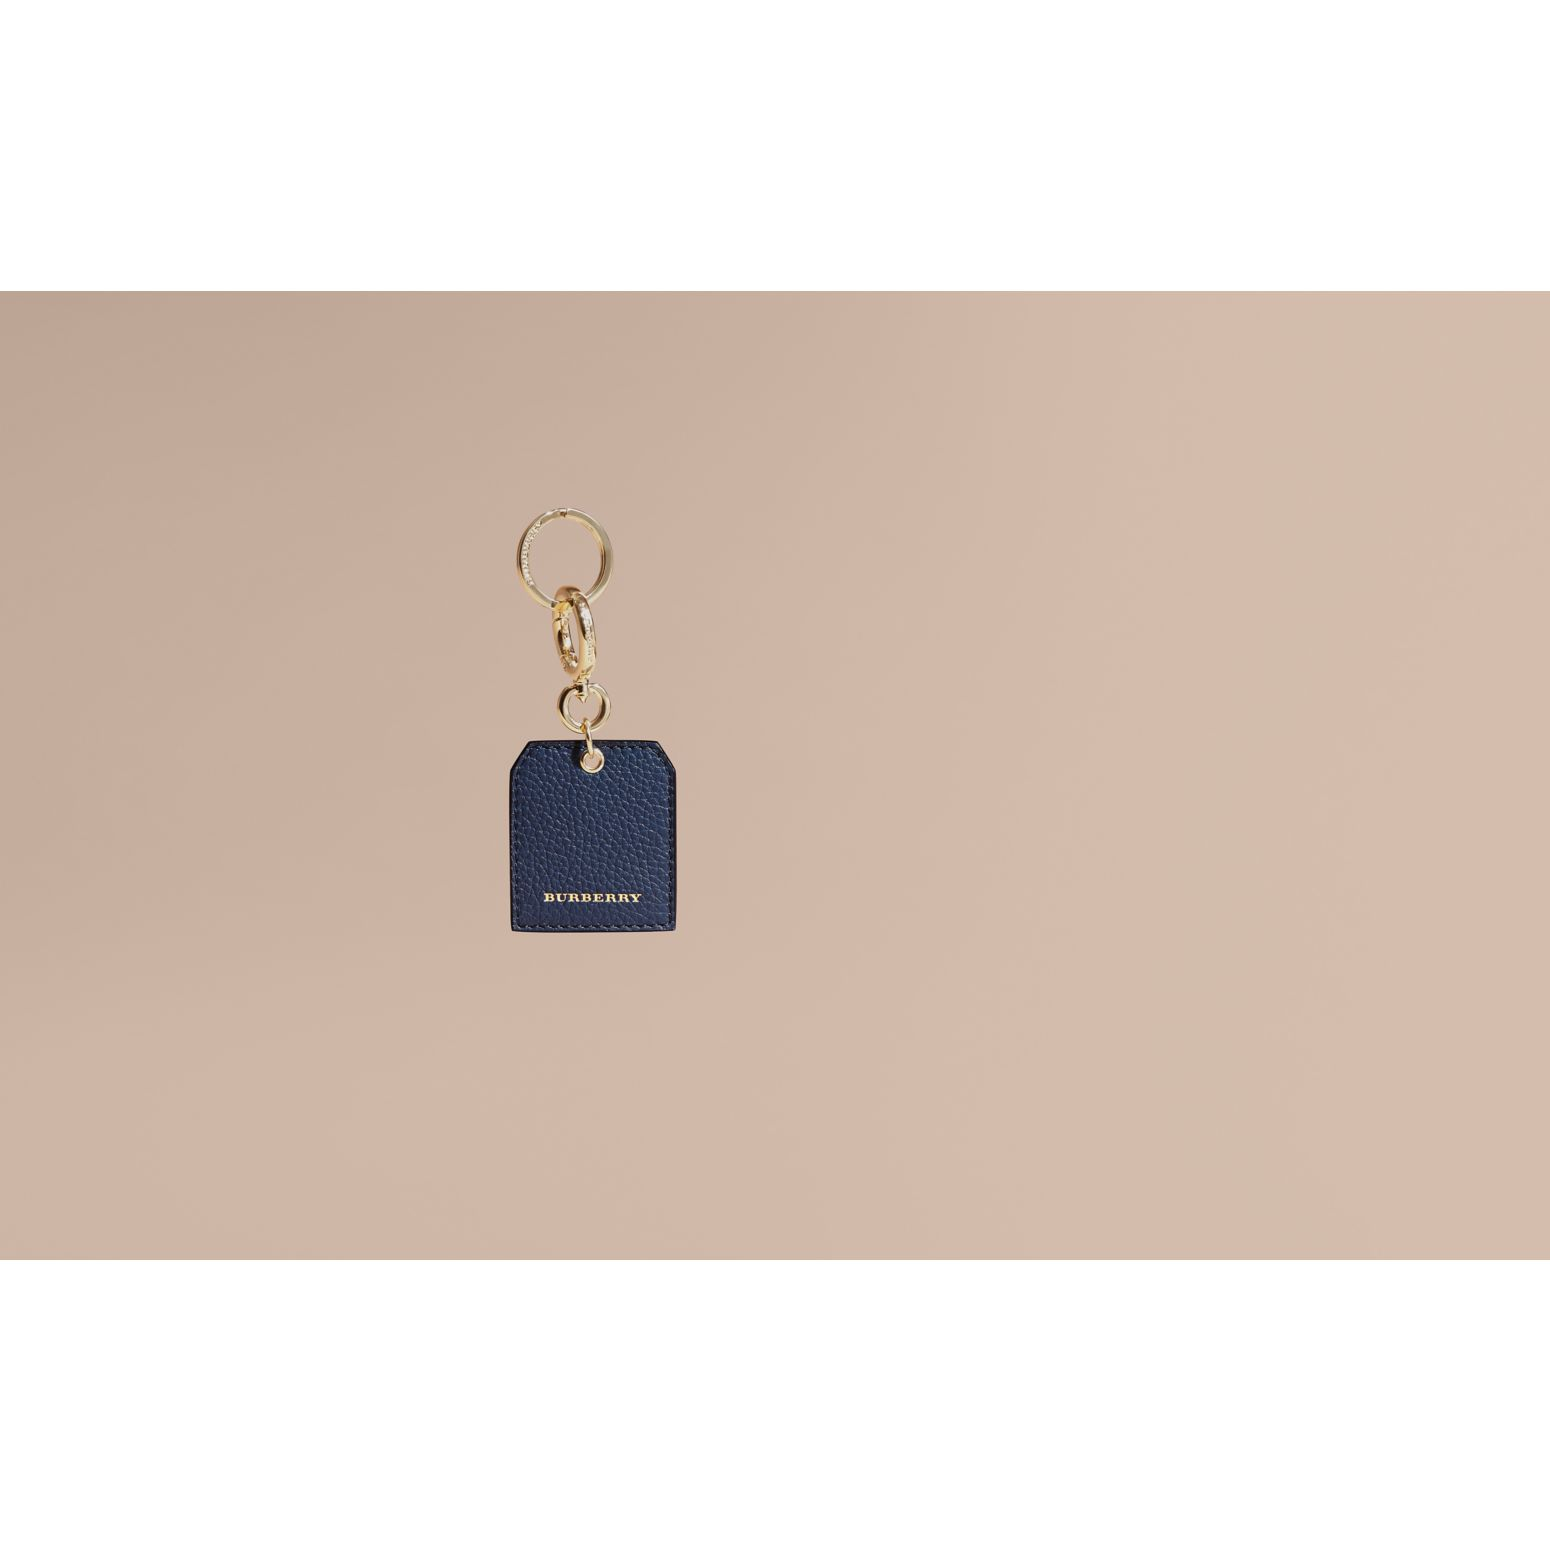 Grainy Leather Key Charm in Bright Navy - Women | Burberry Australia - gallery image 2